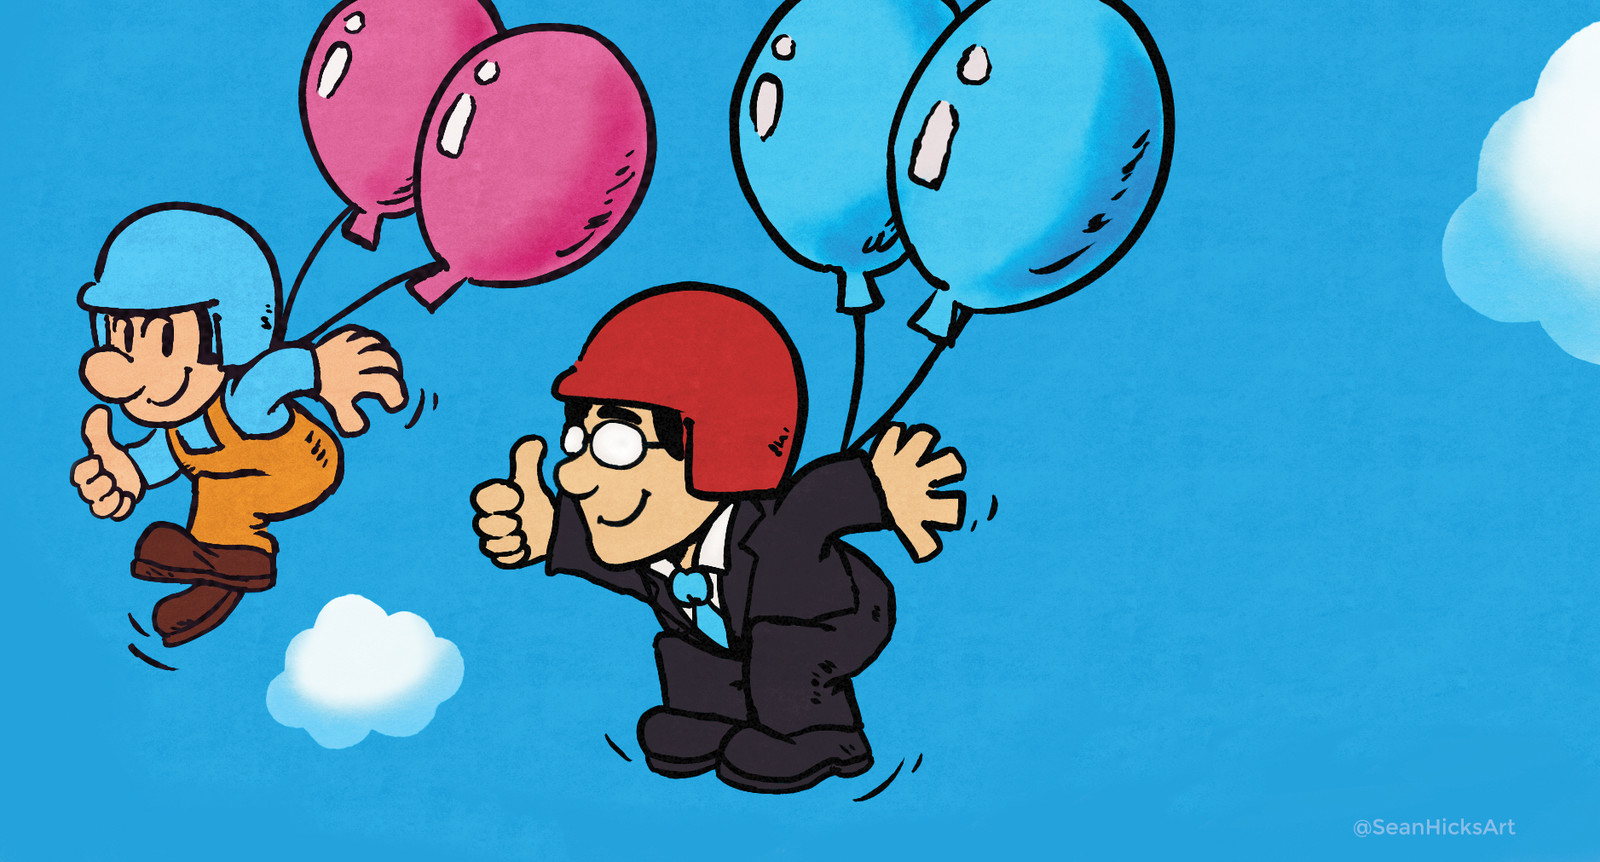 One of the first game Iwata worked on: Balloon Fight. I wanted to capture the style and essence of the original Balloon Fight artwork seen on box art or cartridges. It was fun drawing Iwata in this style.